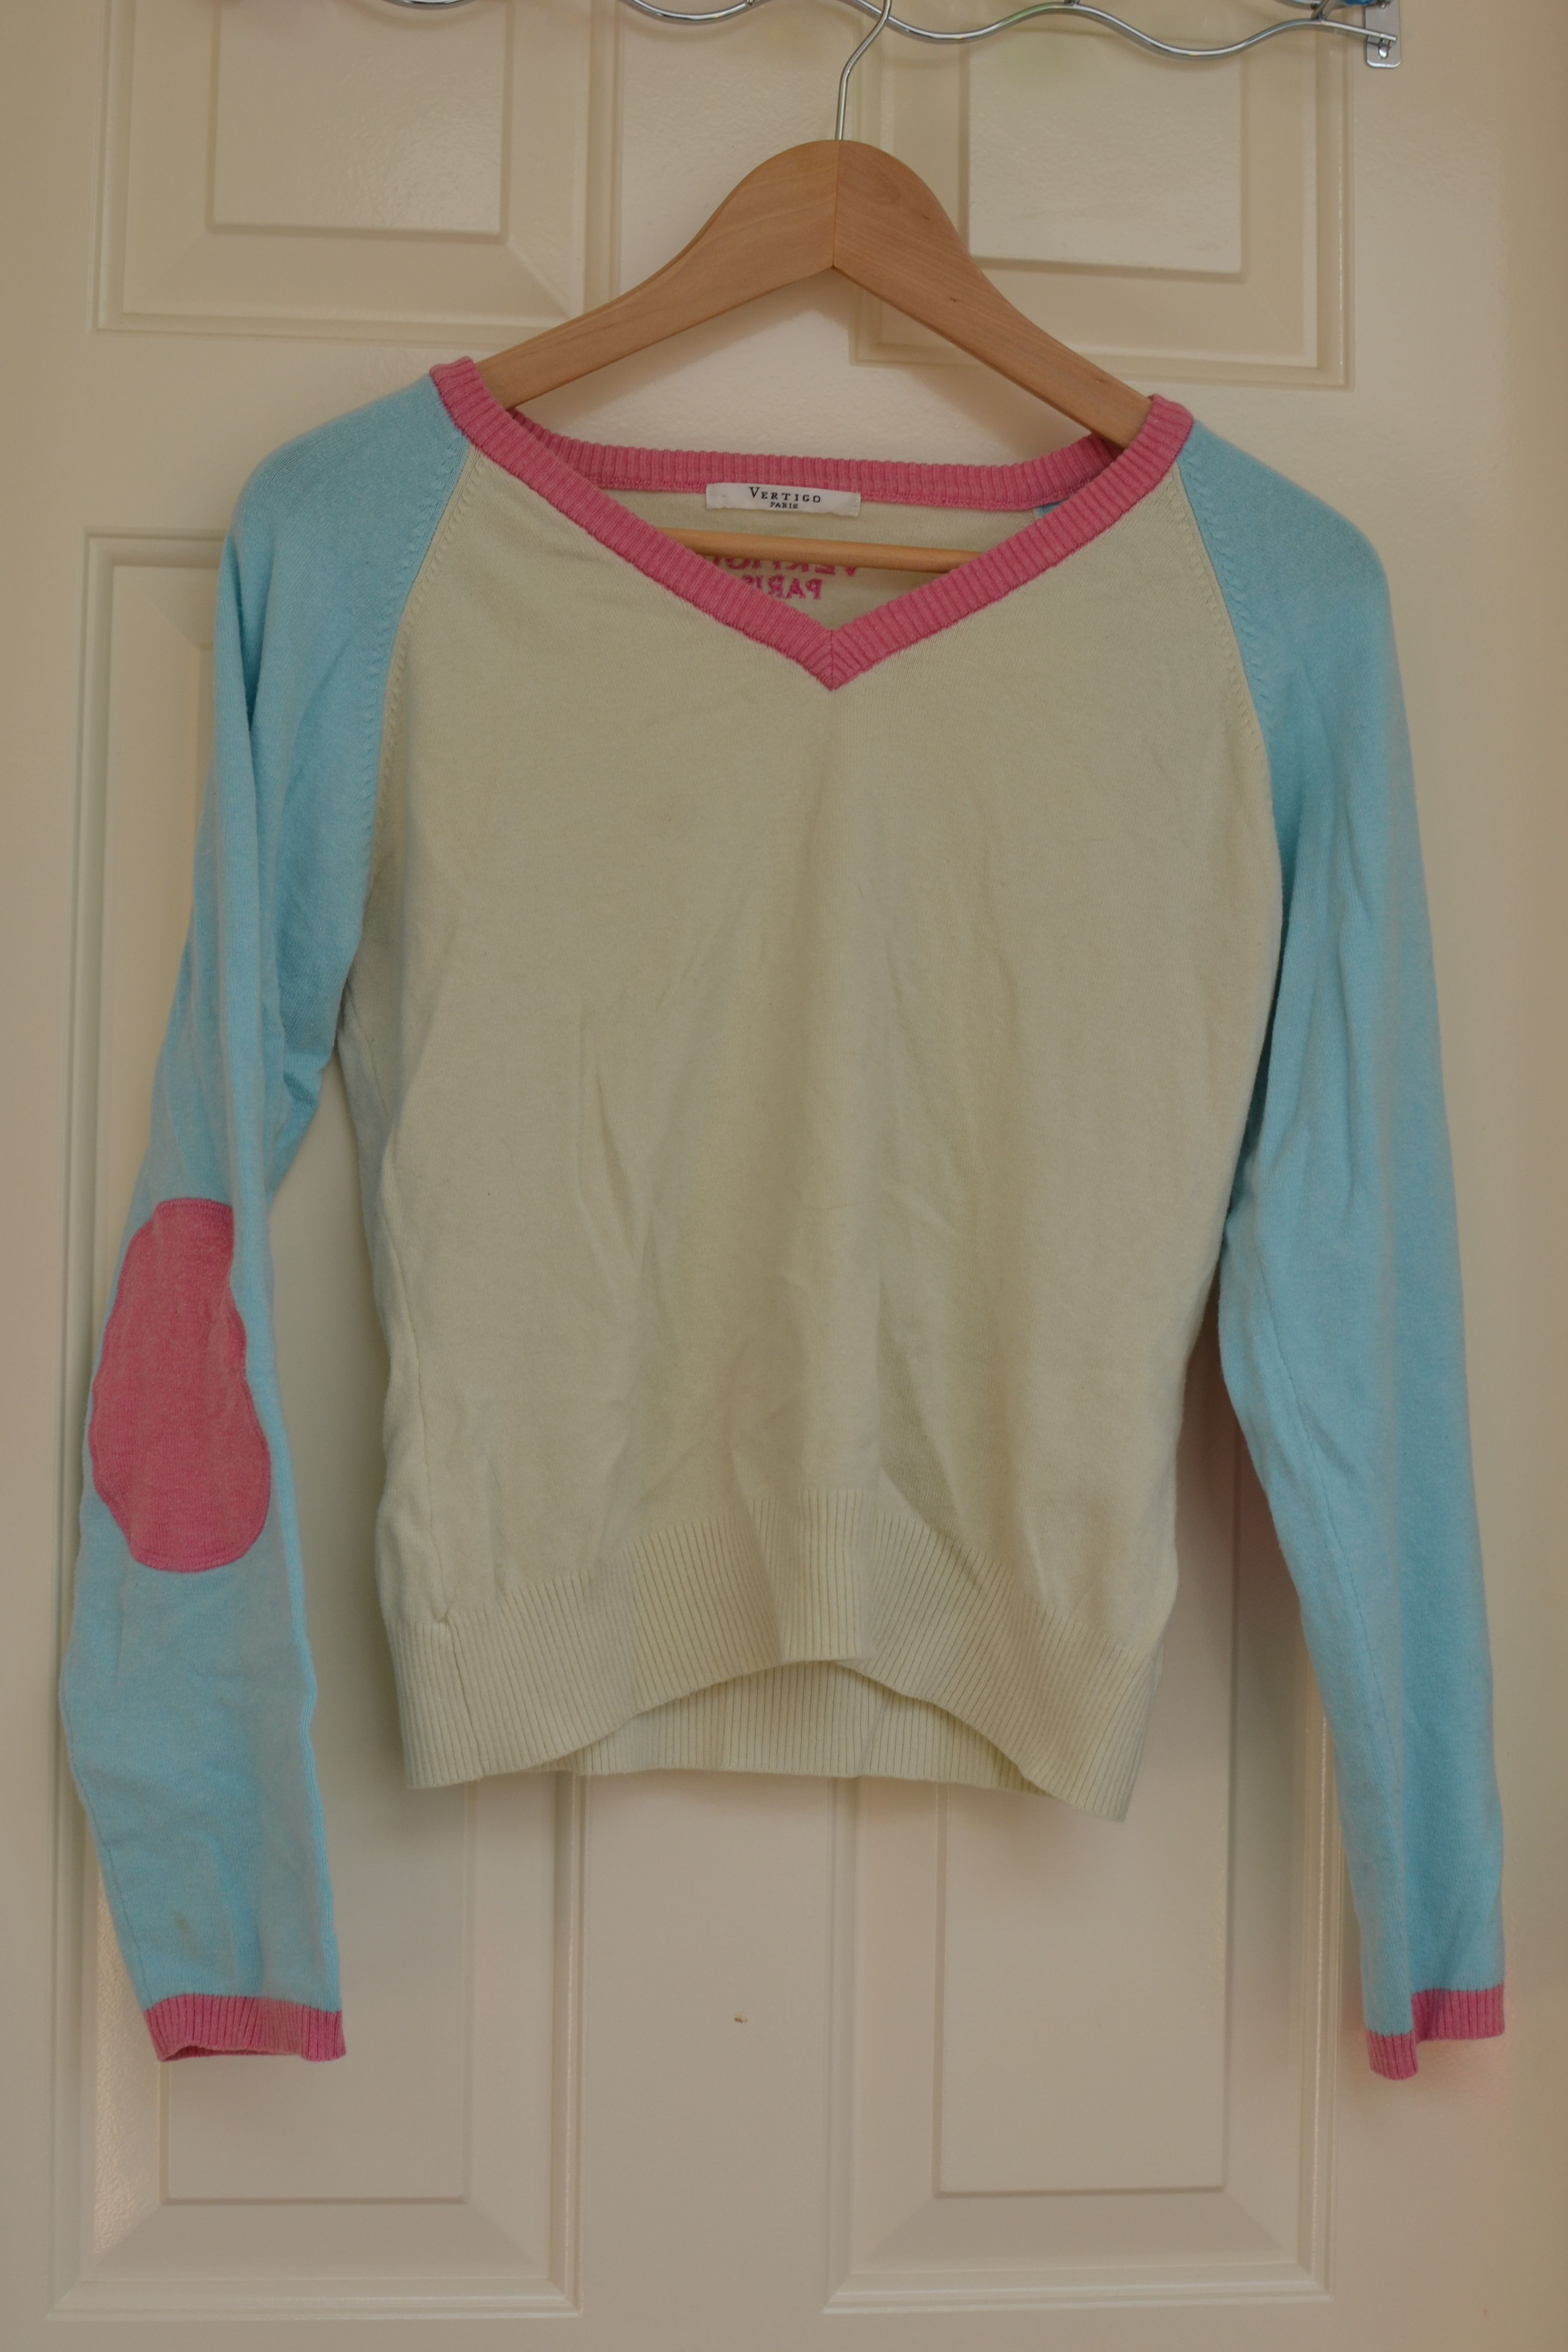 """Vertigo Paris elbow patch sweater. Pretty sure it's a medium. Measures approx 17"""" armpit to armpit. Could potentially use a light shave but not super pilly."""